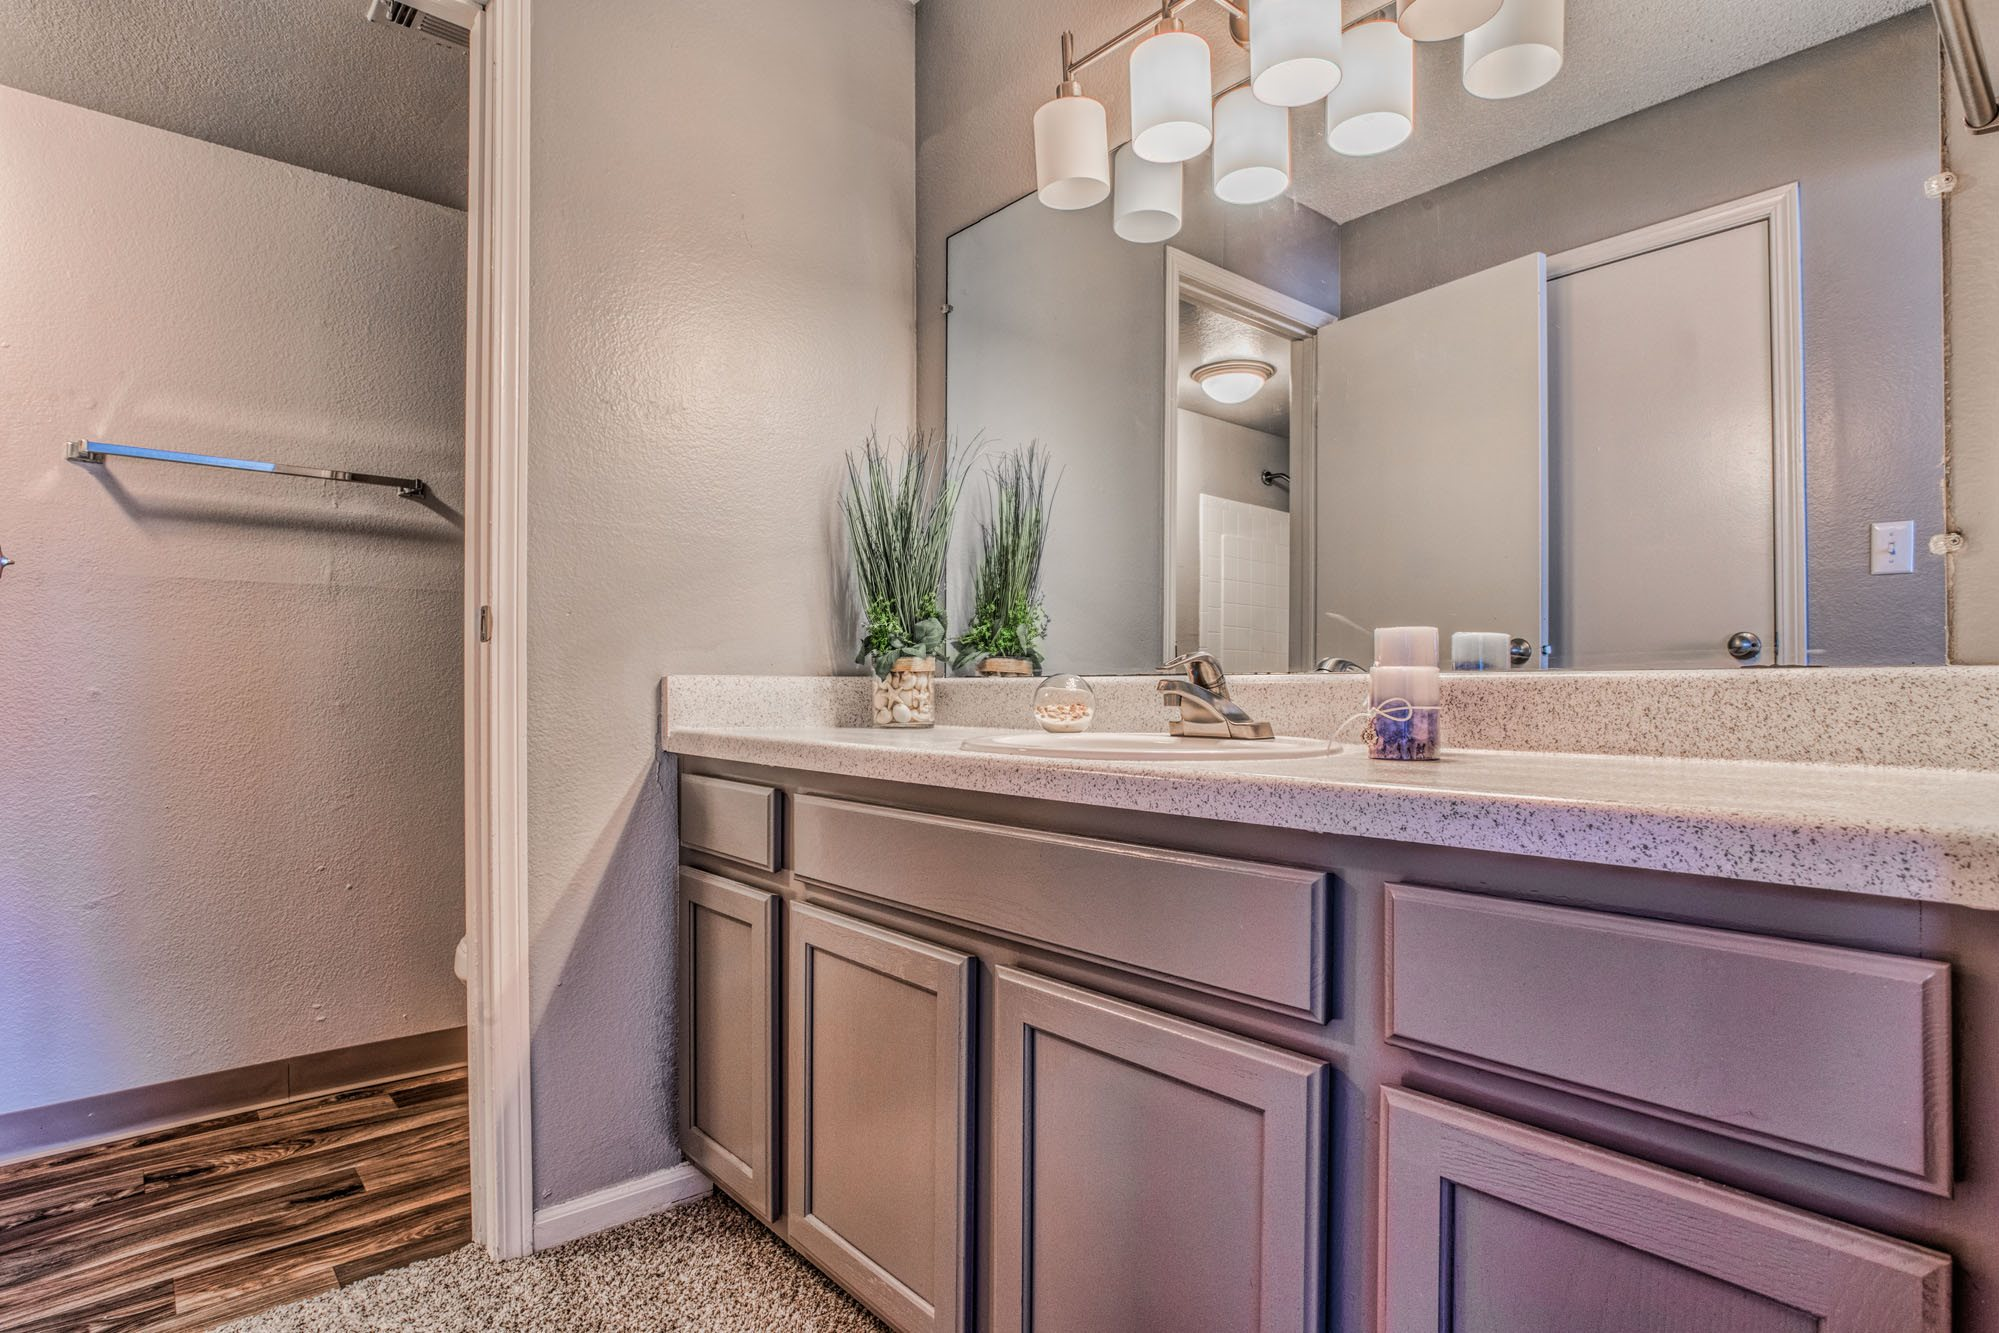 Upscale Interiors at Perry 81 Apartments in Overland Park, Kansas